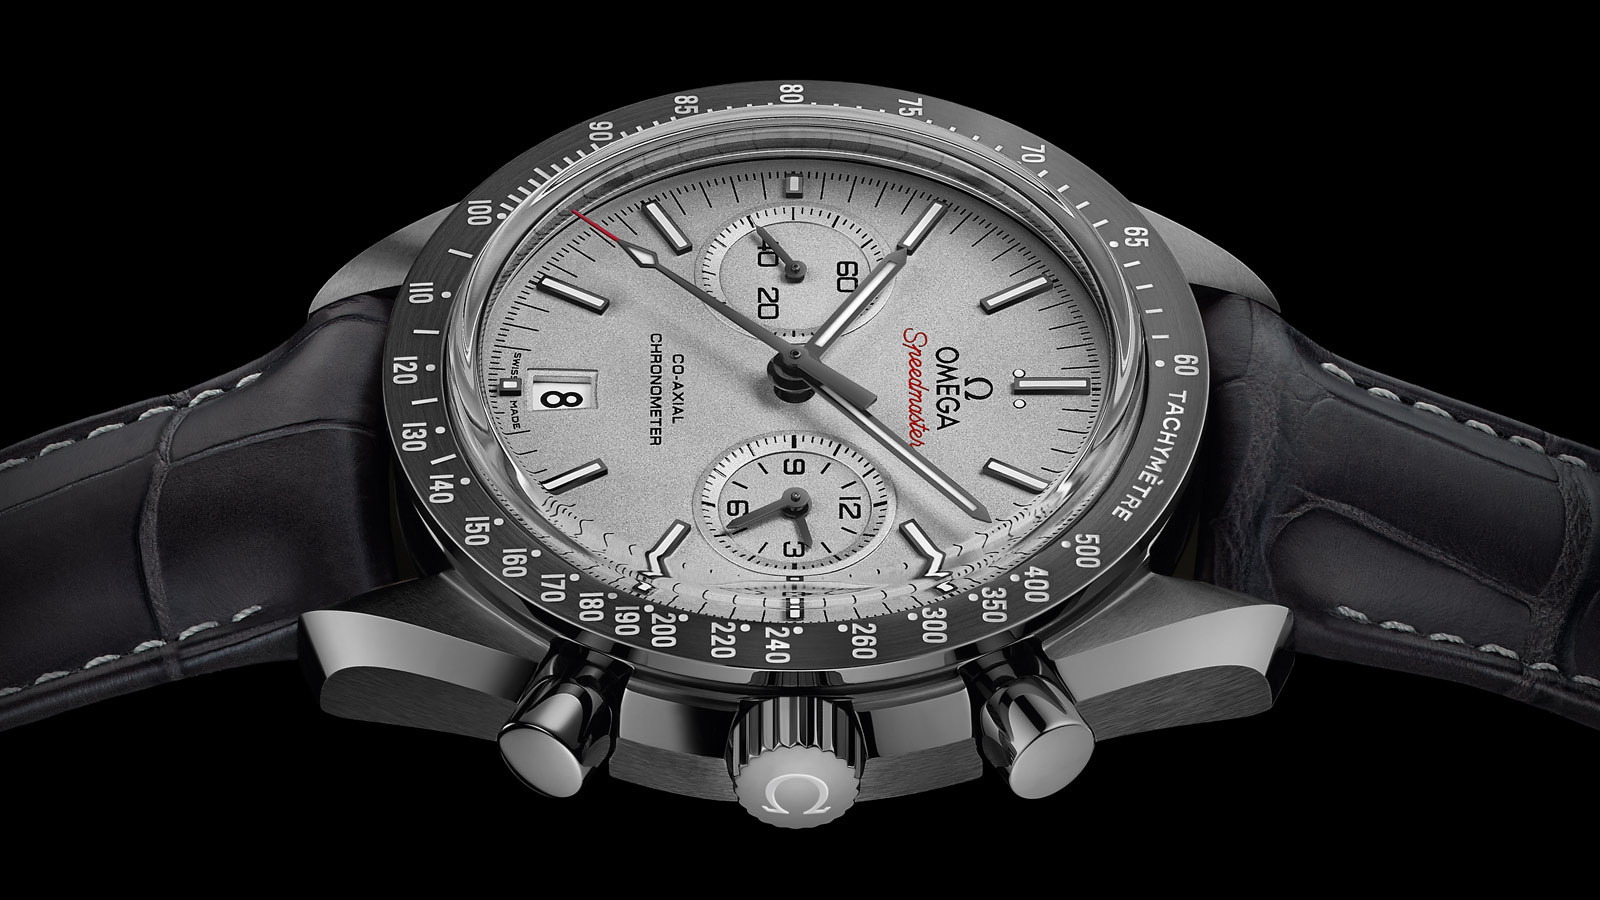 Speedmaster Moonwatch Moonwatch Omega Co‑Axial Chronograph 44.25 mm - 311.93.44.51.99.001 - View 4